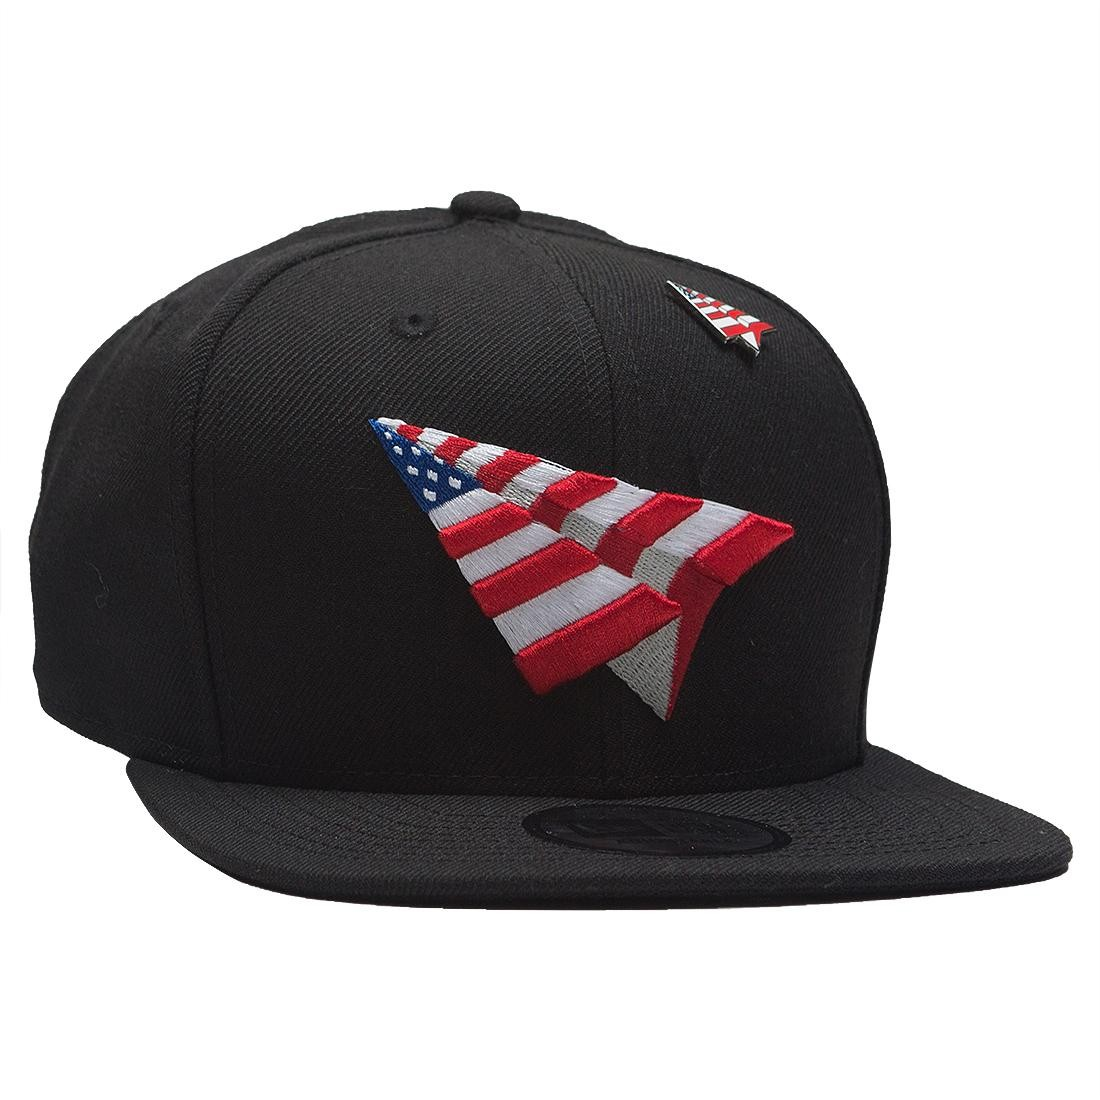 744290fedffc9 Paper Planes The Crown Snapback Cap - American Dream With Pin black red  white blue